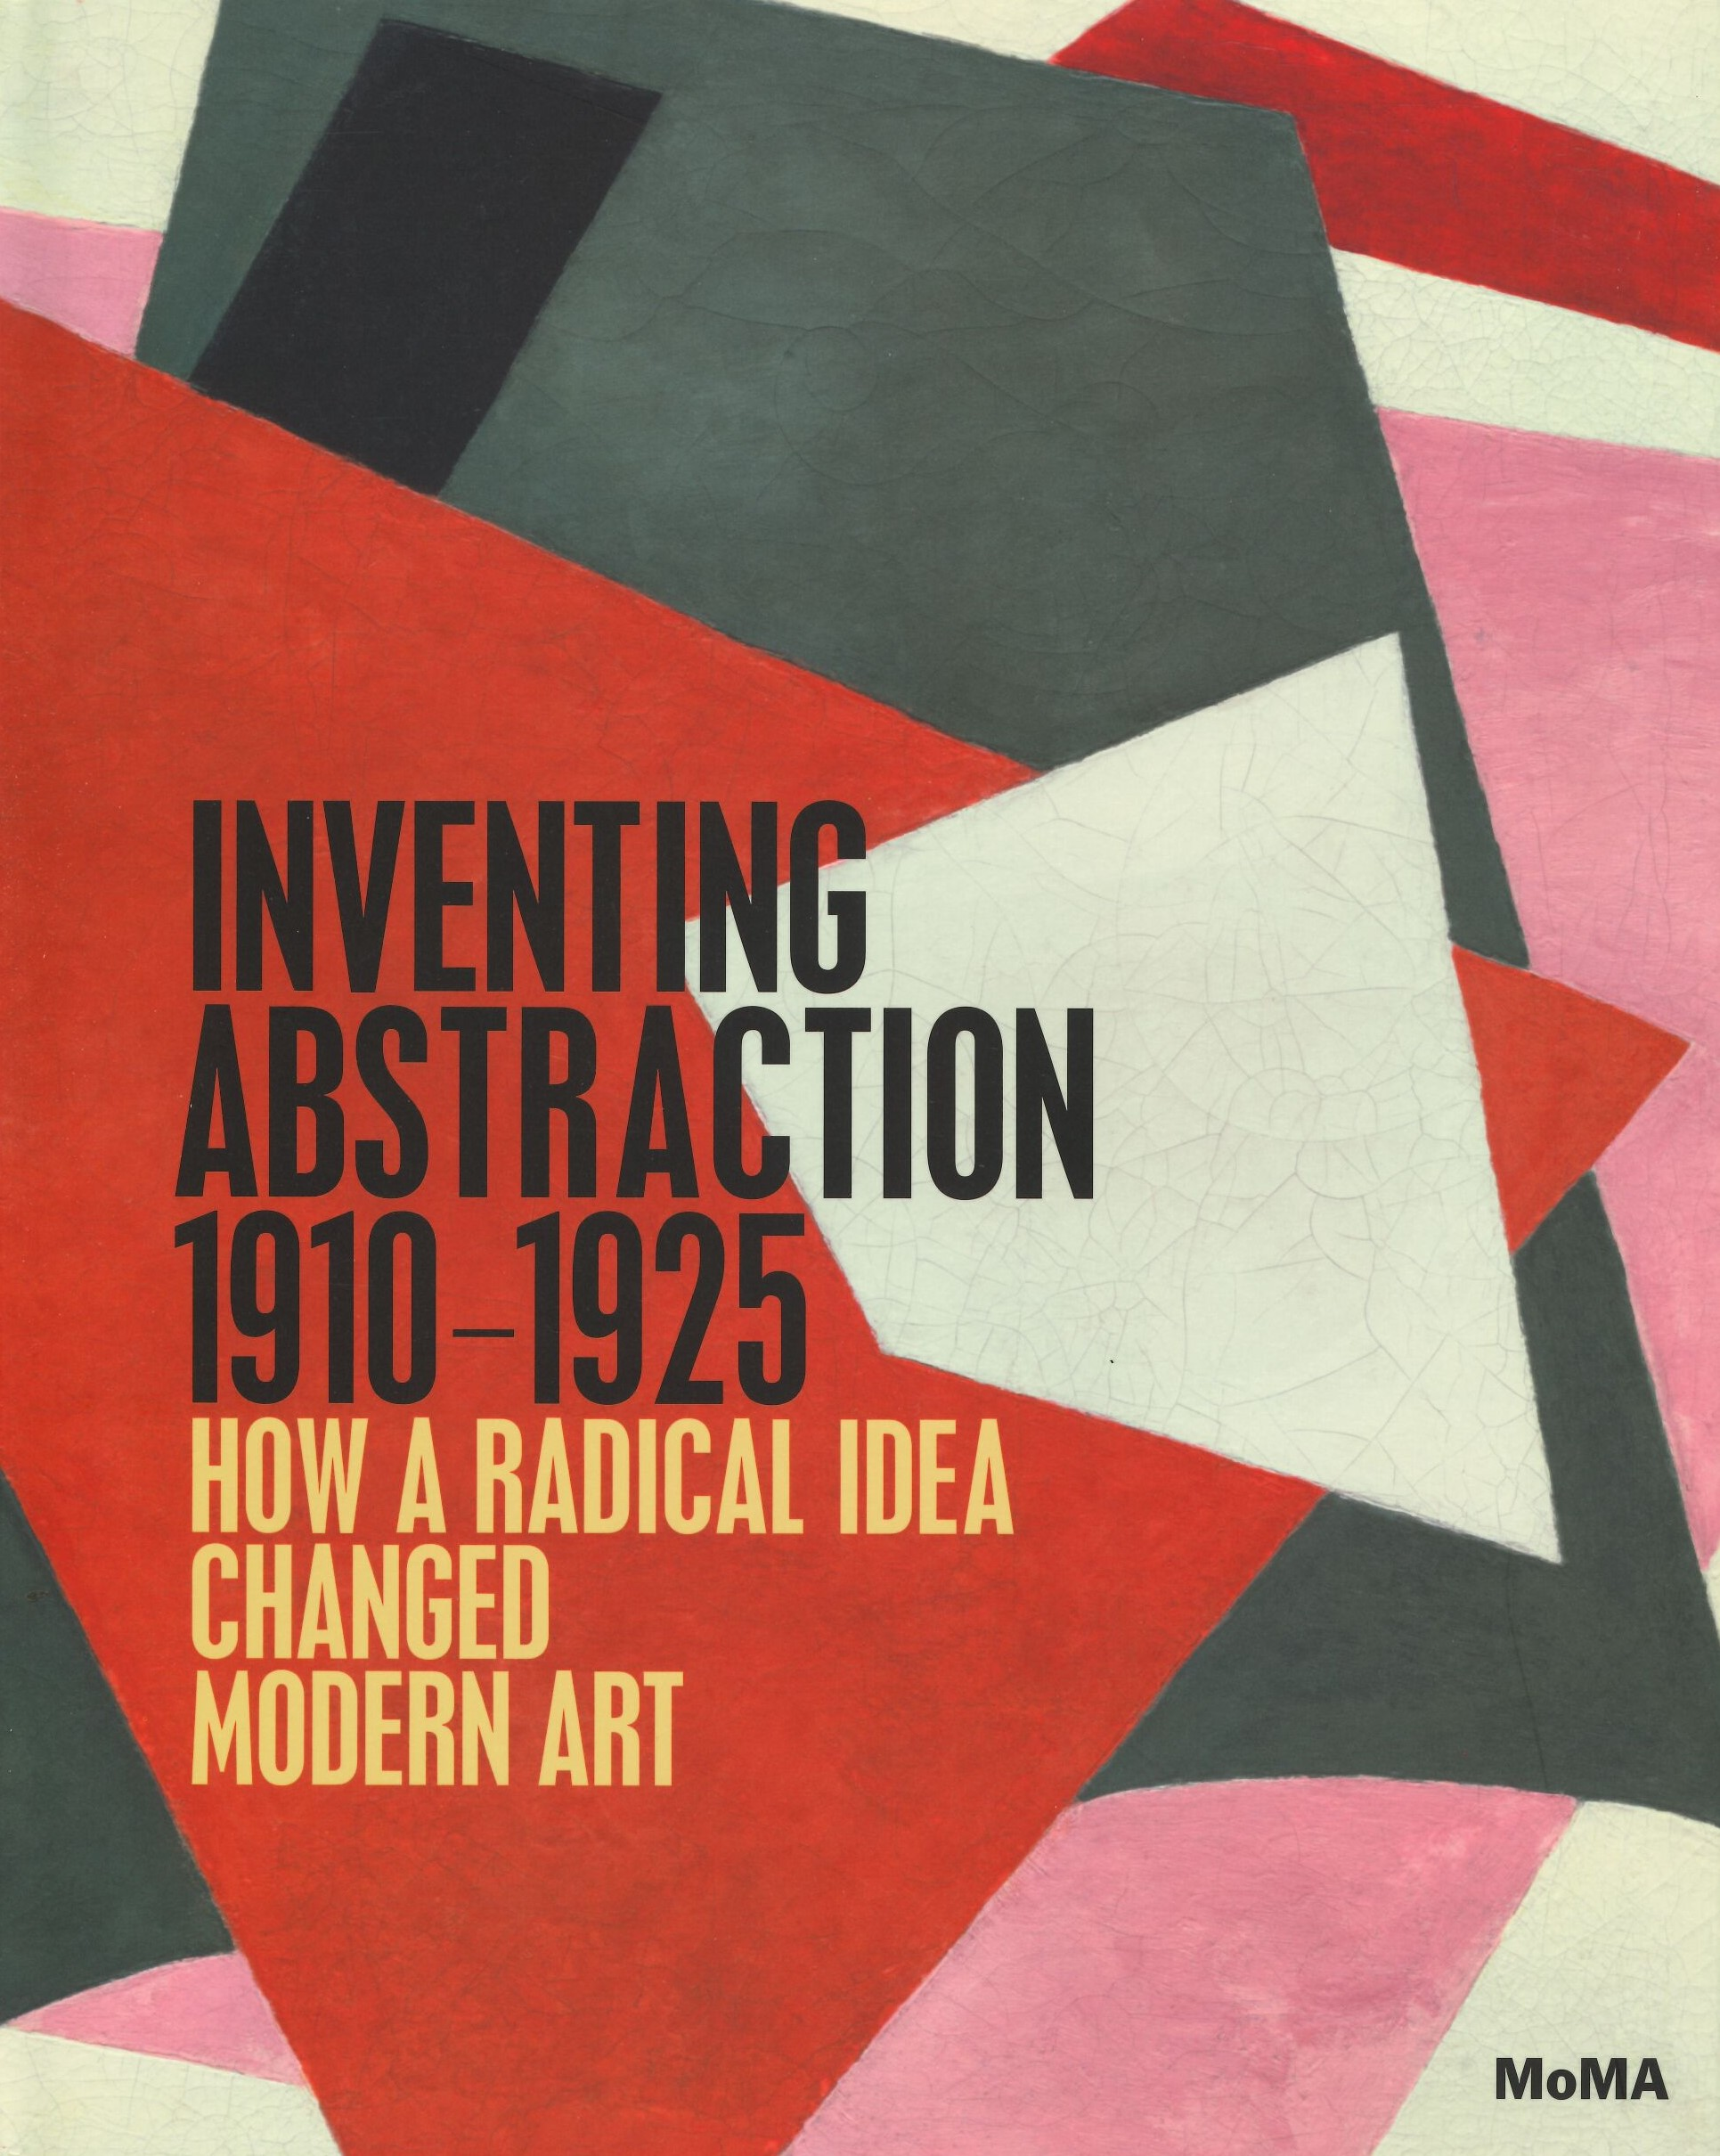 inventing_abstraction.jpg